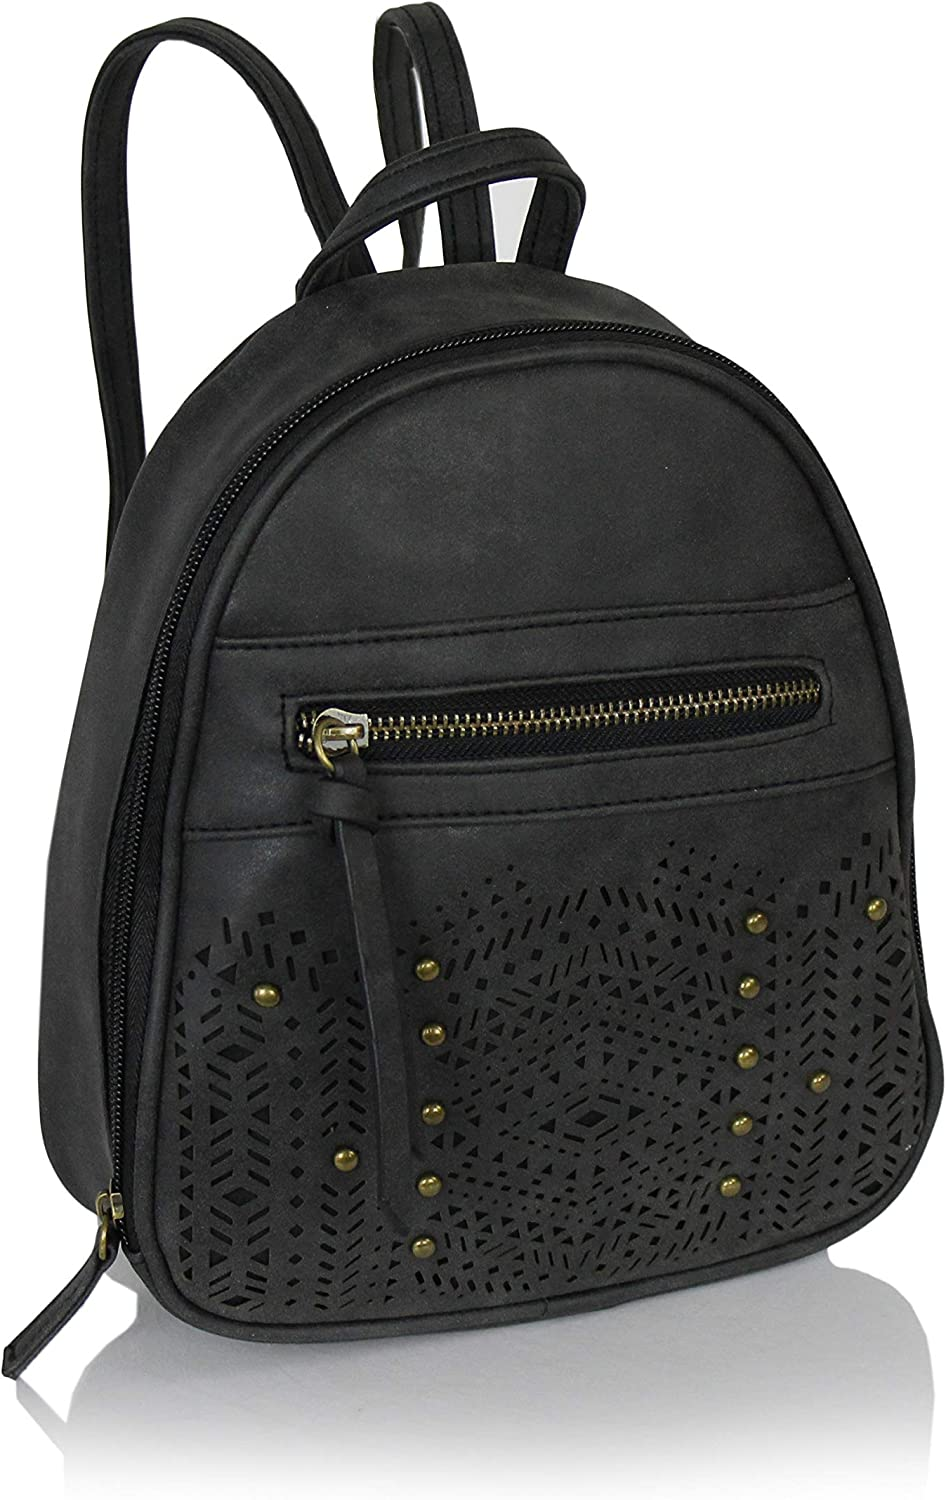 Elliott and Oliver Co. Bohemian Laser Cut Out Vegan Suede Daypack Bag Mini Cute Hipster Perforated Design Women's Travel Backpack or School Bag (Matte Black)